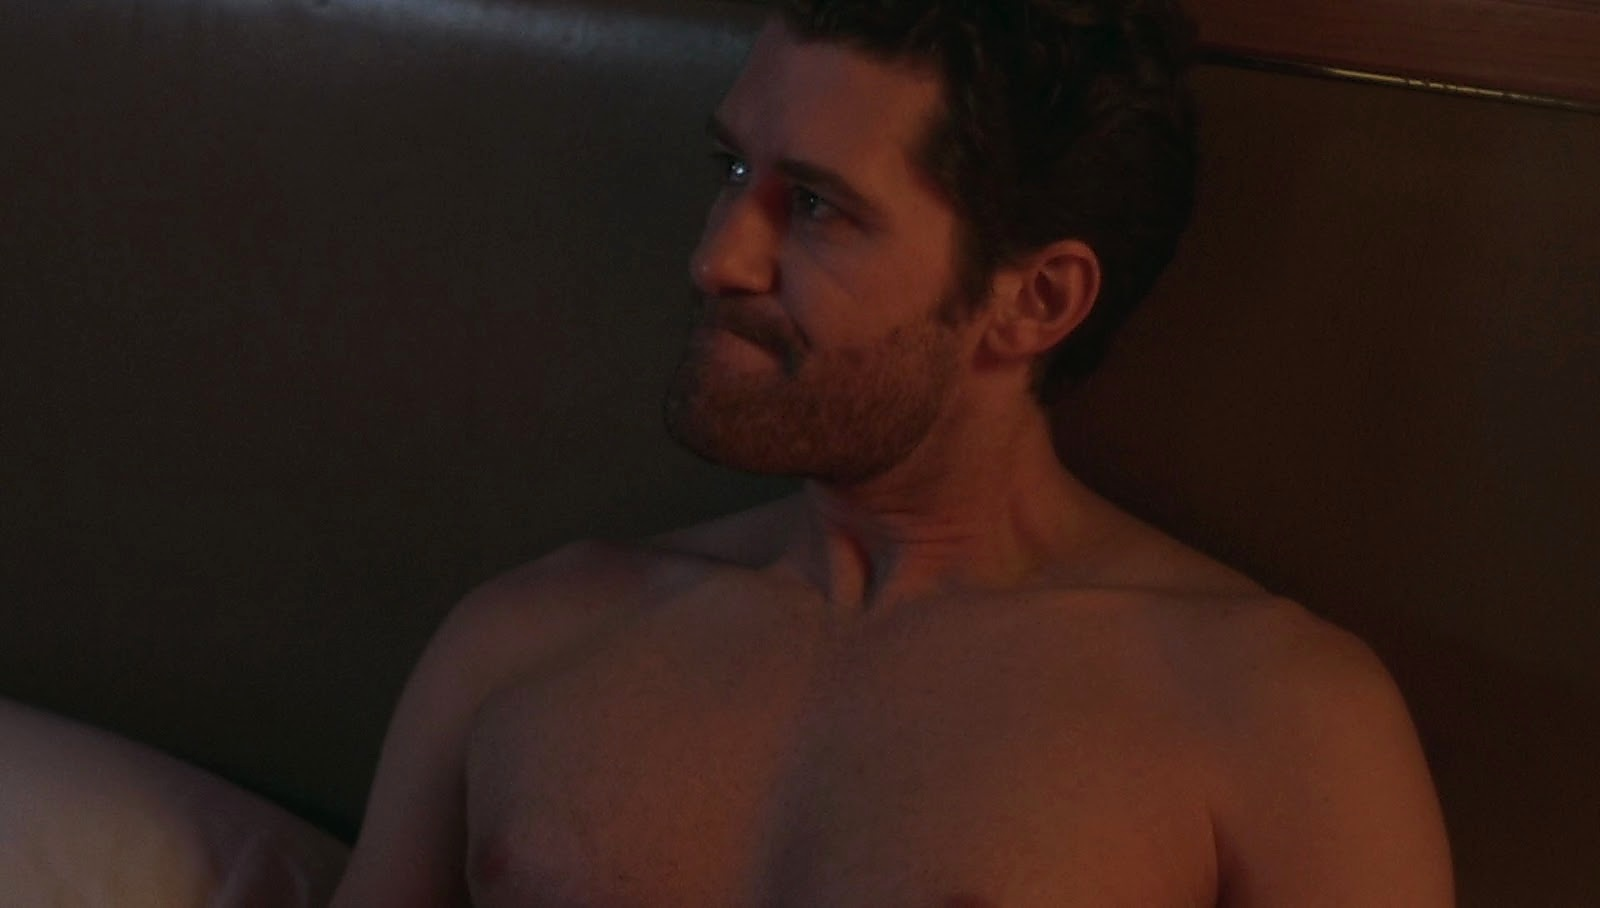 Matthew Morrison sexy shirtless scene May 2, 2017, 12pm